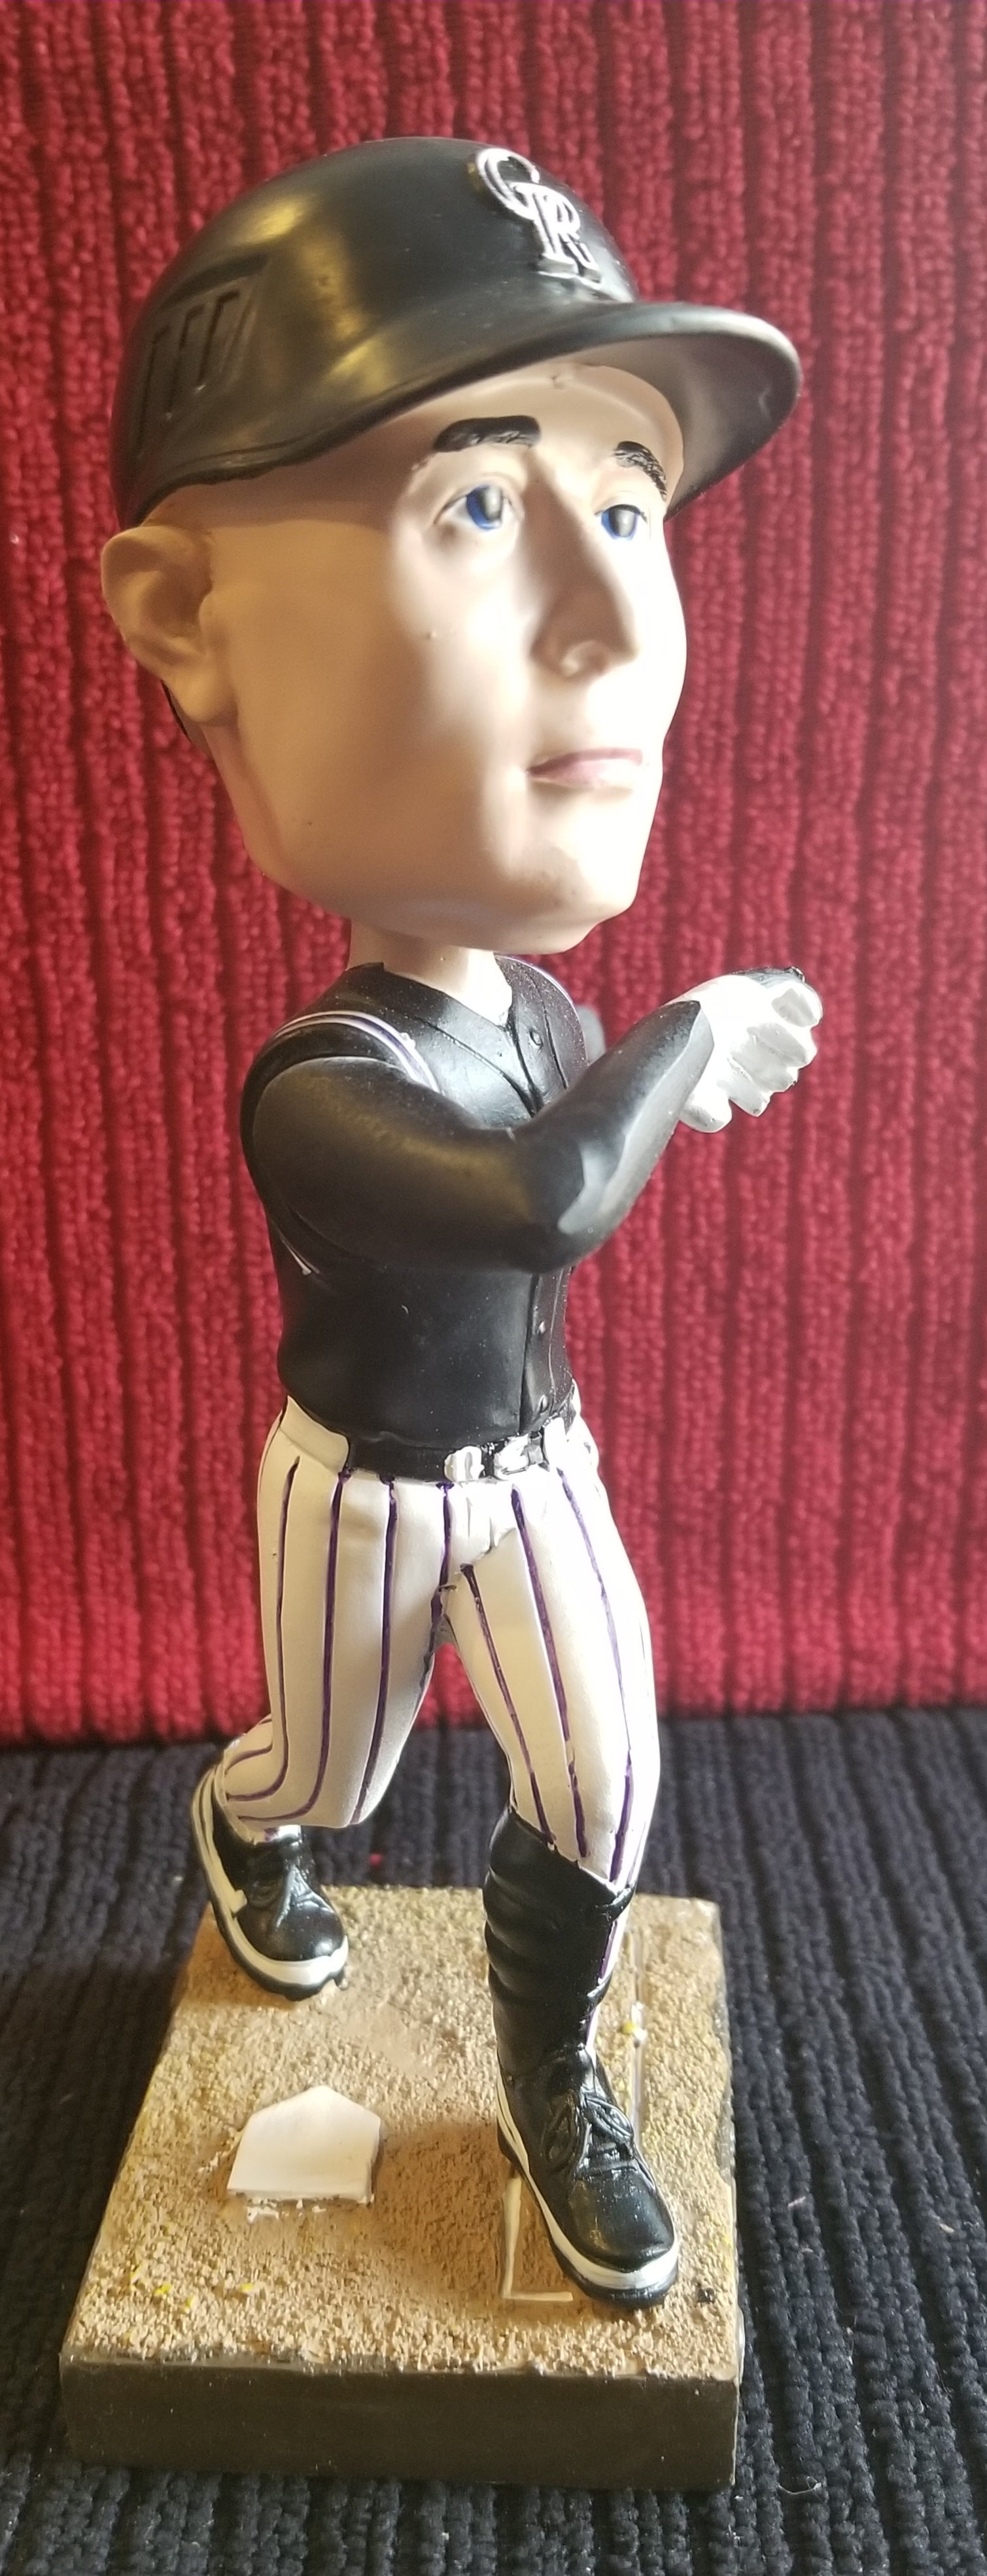 Matt Holliday #5 2008 Colorado Rockies Esurance sponsored (SGA) Bobblehead $